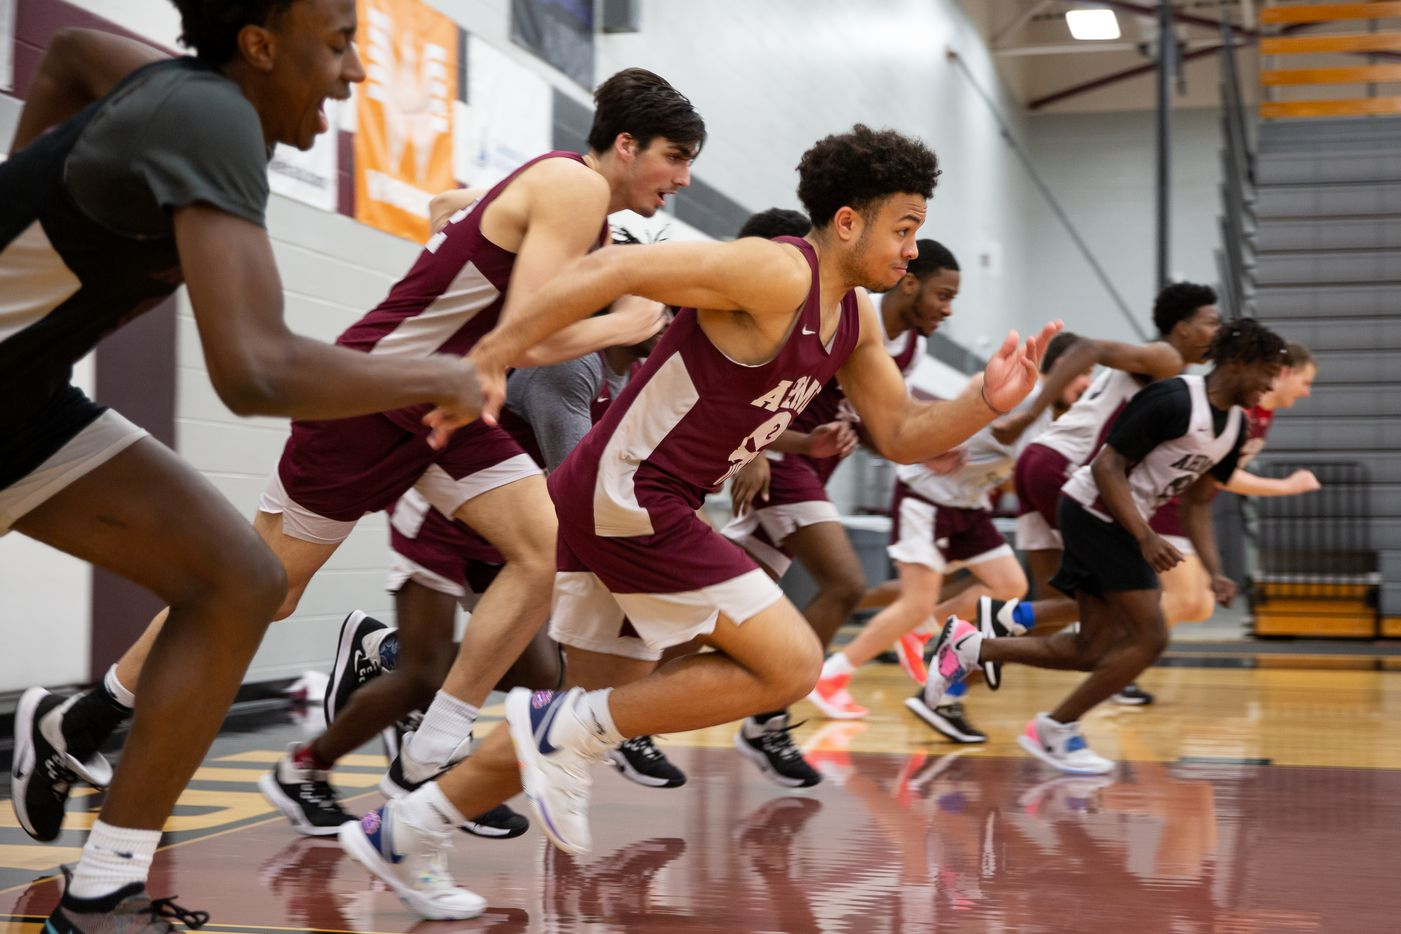 Wylie High School guard Kobe Wiggins (2) and the rest of the team sprint up and down the court during practice at Wylie High School on March 11, 2020 in Wylie, Texas. (Kara Dry/Special Contributor)